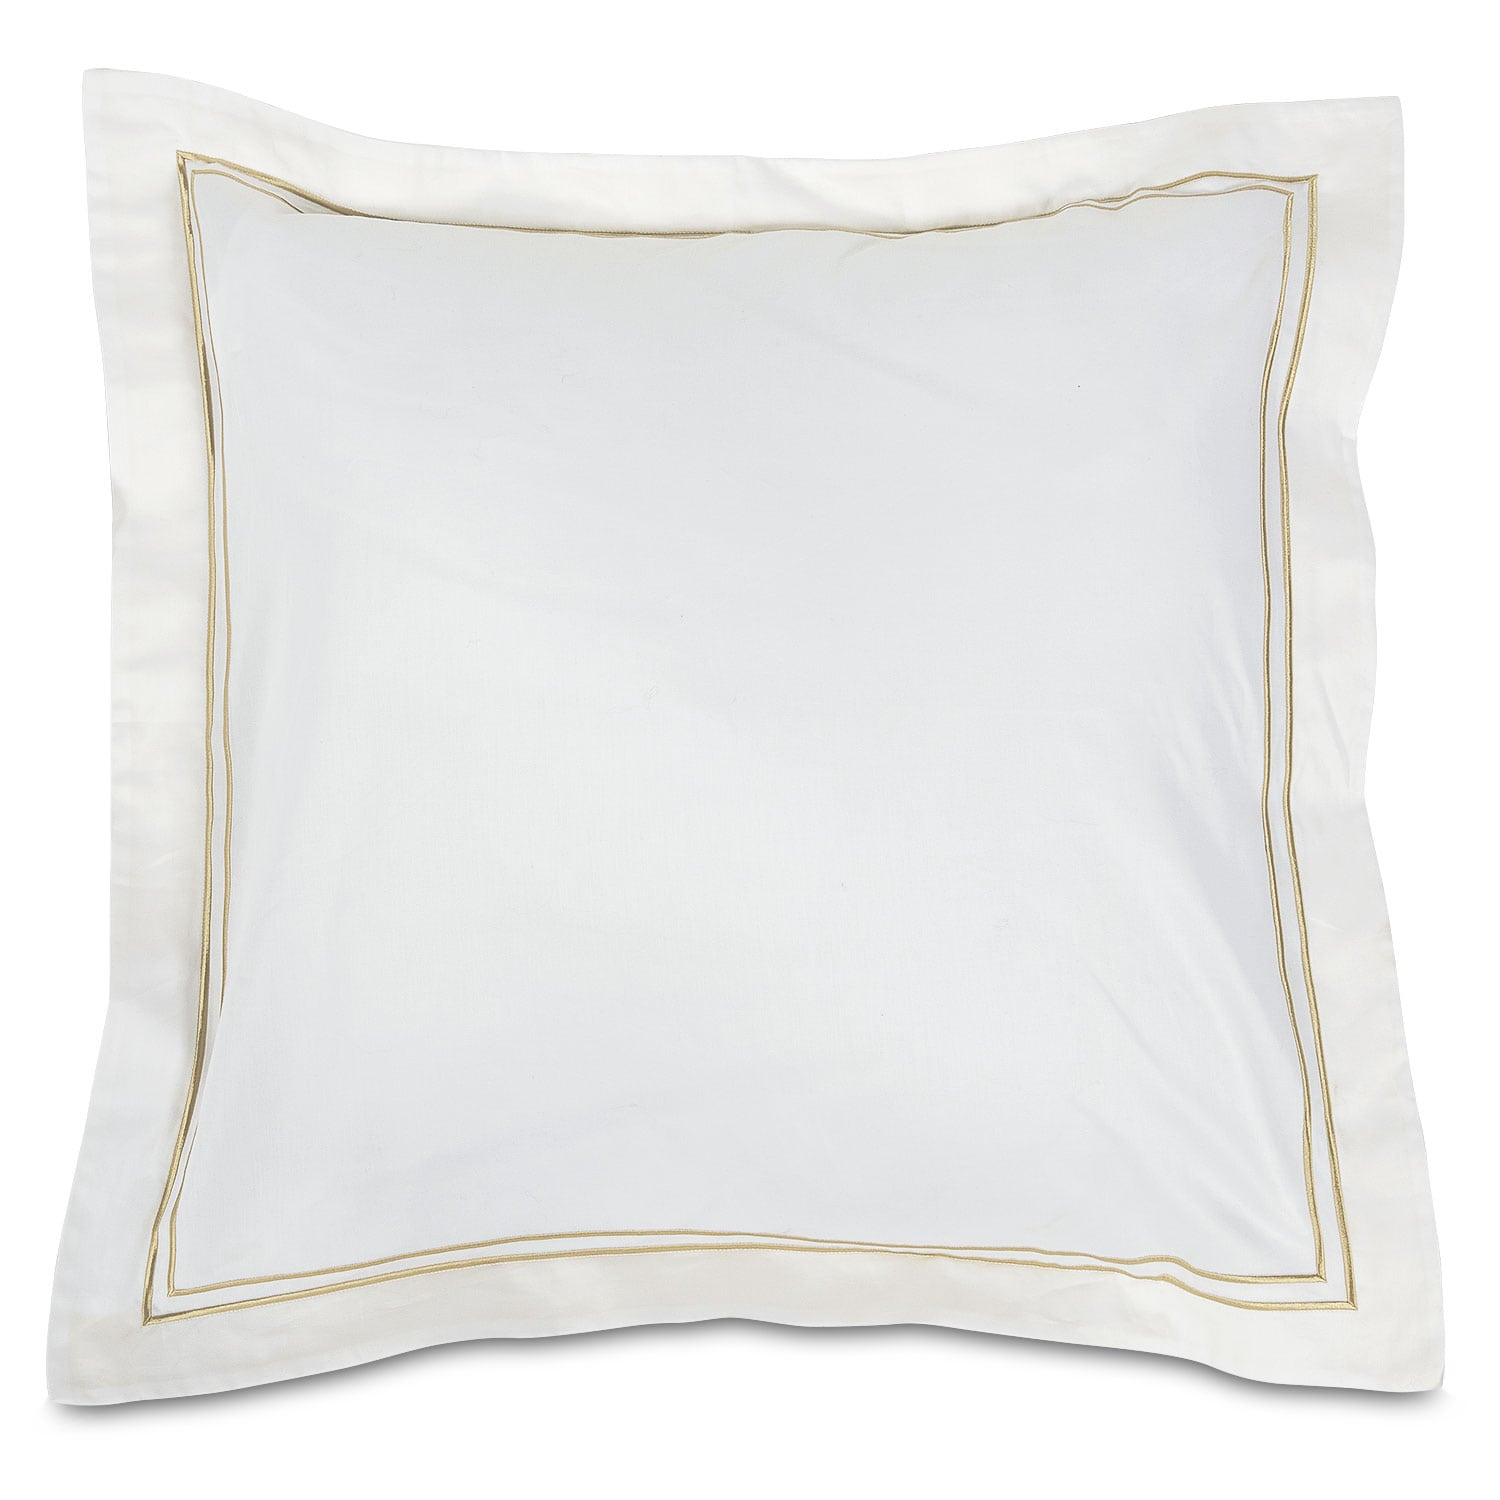 Hampton Embroidered Euro Sham Set of Two - White and Beige